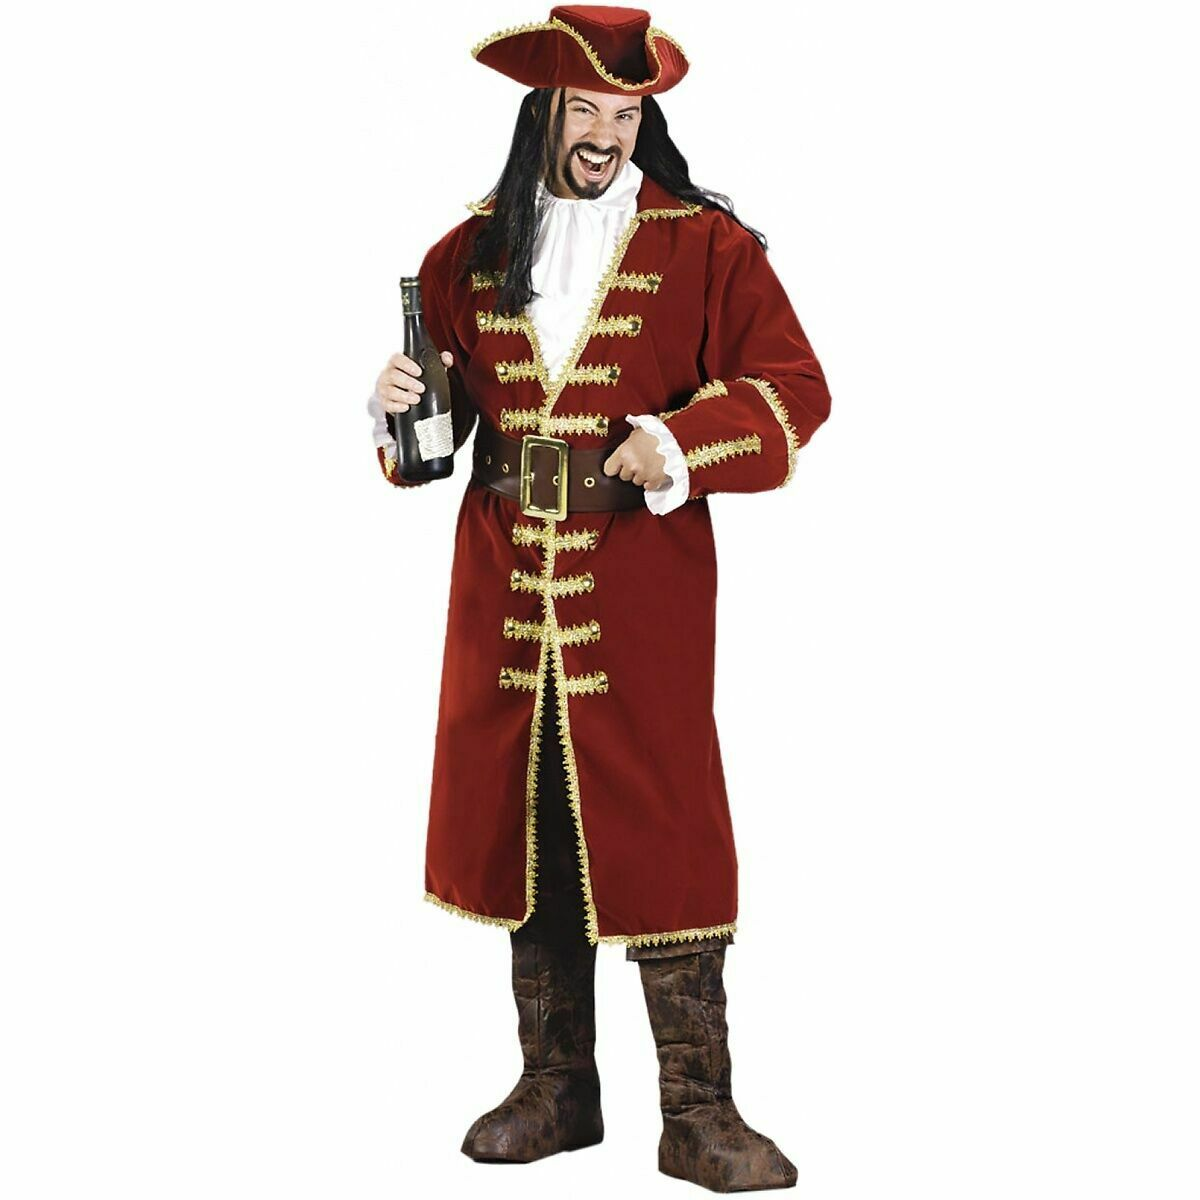 swashbuckler  black leather hat pirate feather costume cosplay reenactment